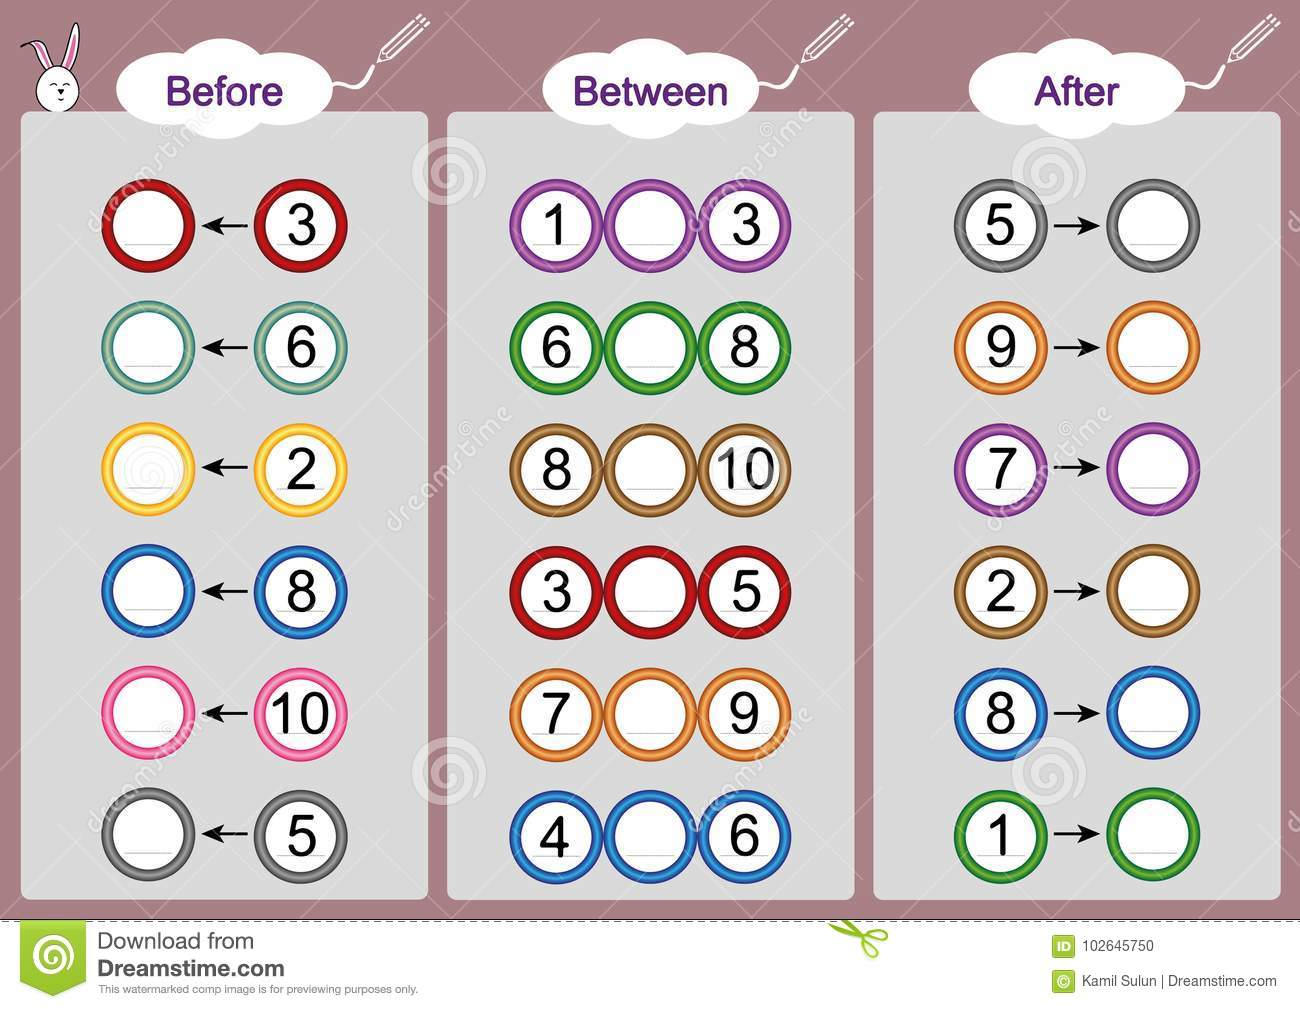 hight resolution of What Comes Before-Between And After